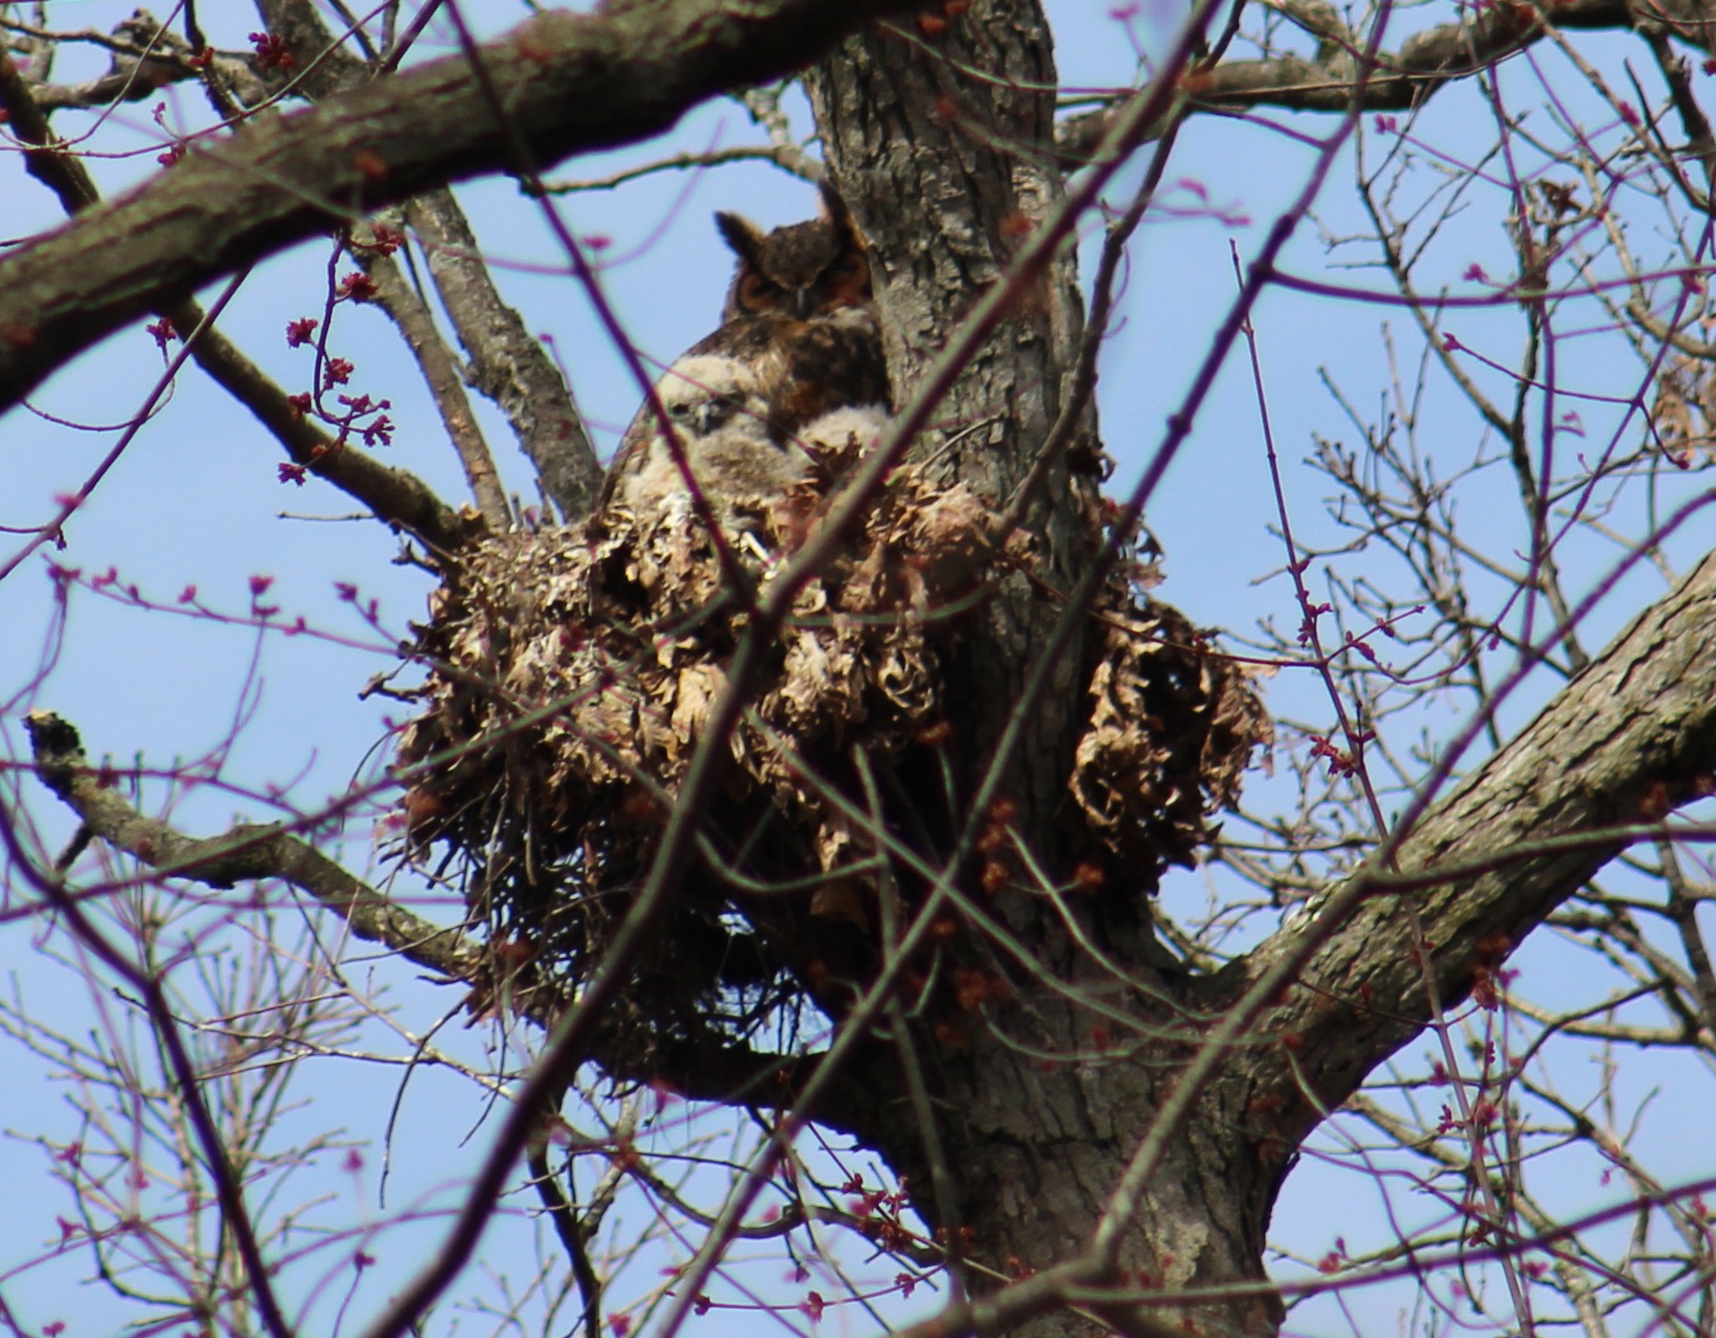 The Great Horned Owl begins its breeding season in Michigan while the landscape is still covered in snow. A study in perseverance and survival, the owlets often hatch before it is officially Spring. This family of GHOW live in the Eberwhite Woods, where Strelow and others in the community walk and take groups of elementary school children on nature walks. Teaching kids about nature helps their young brains grow, and connects them to their surroundings. In a world increasingly steeped in technology and social media, experiencing and learning about nature is crucial to developing critical thinking skills in the real world. To learn more about Great Horned Owls and their role in urban ecology see University of Michigan's  BIOKIDS .